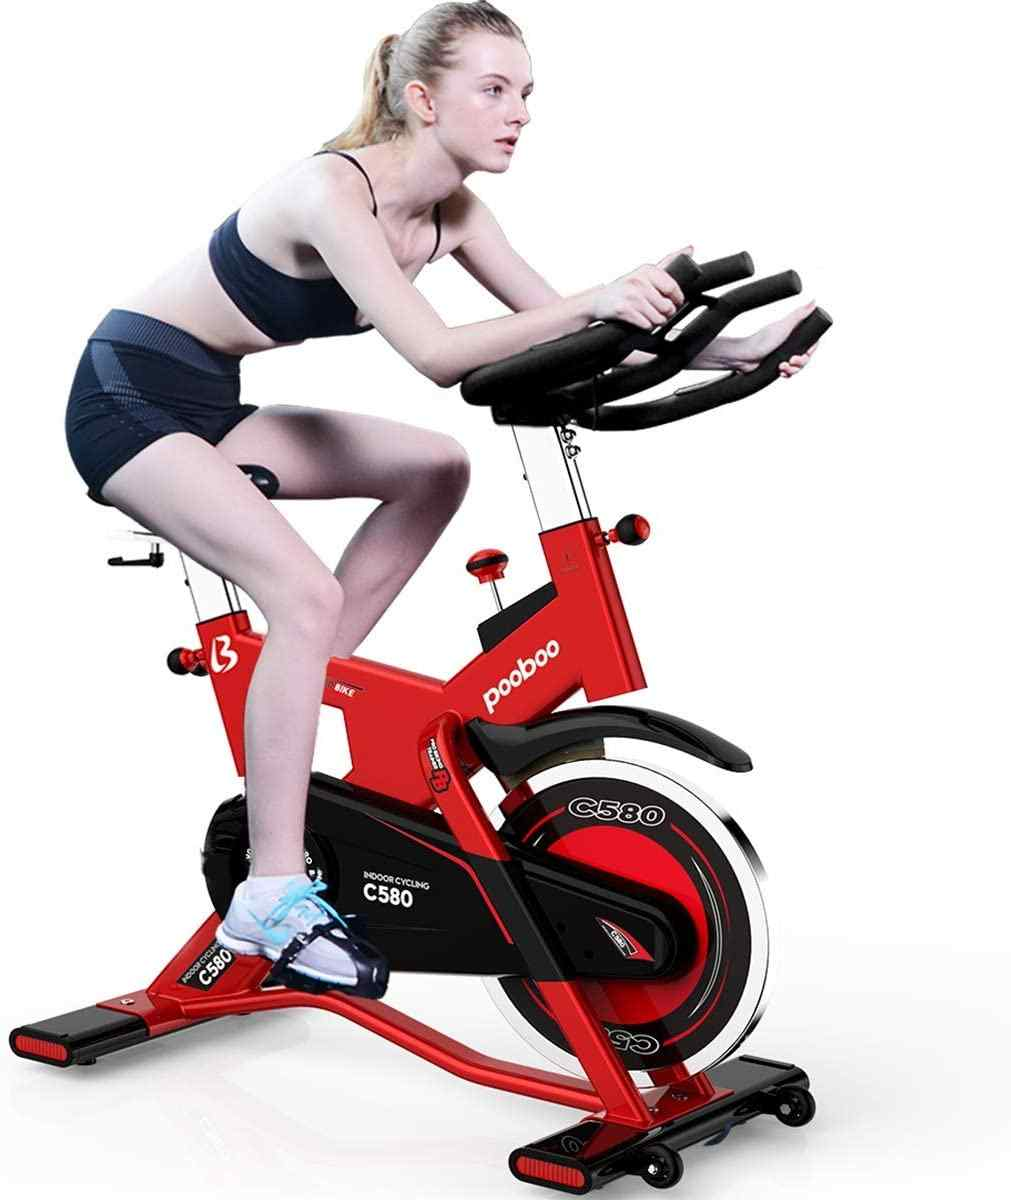 pooboo indoor cycling bike